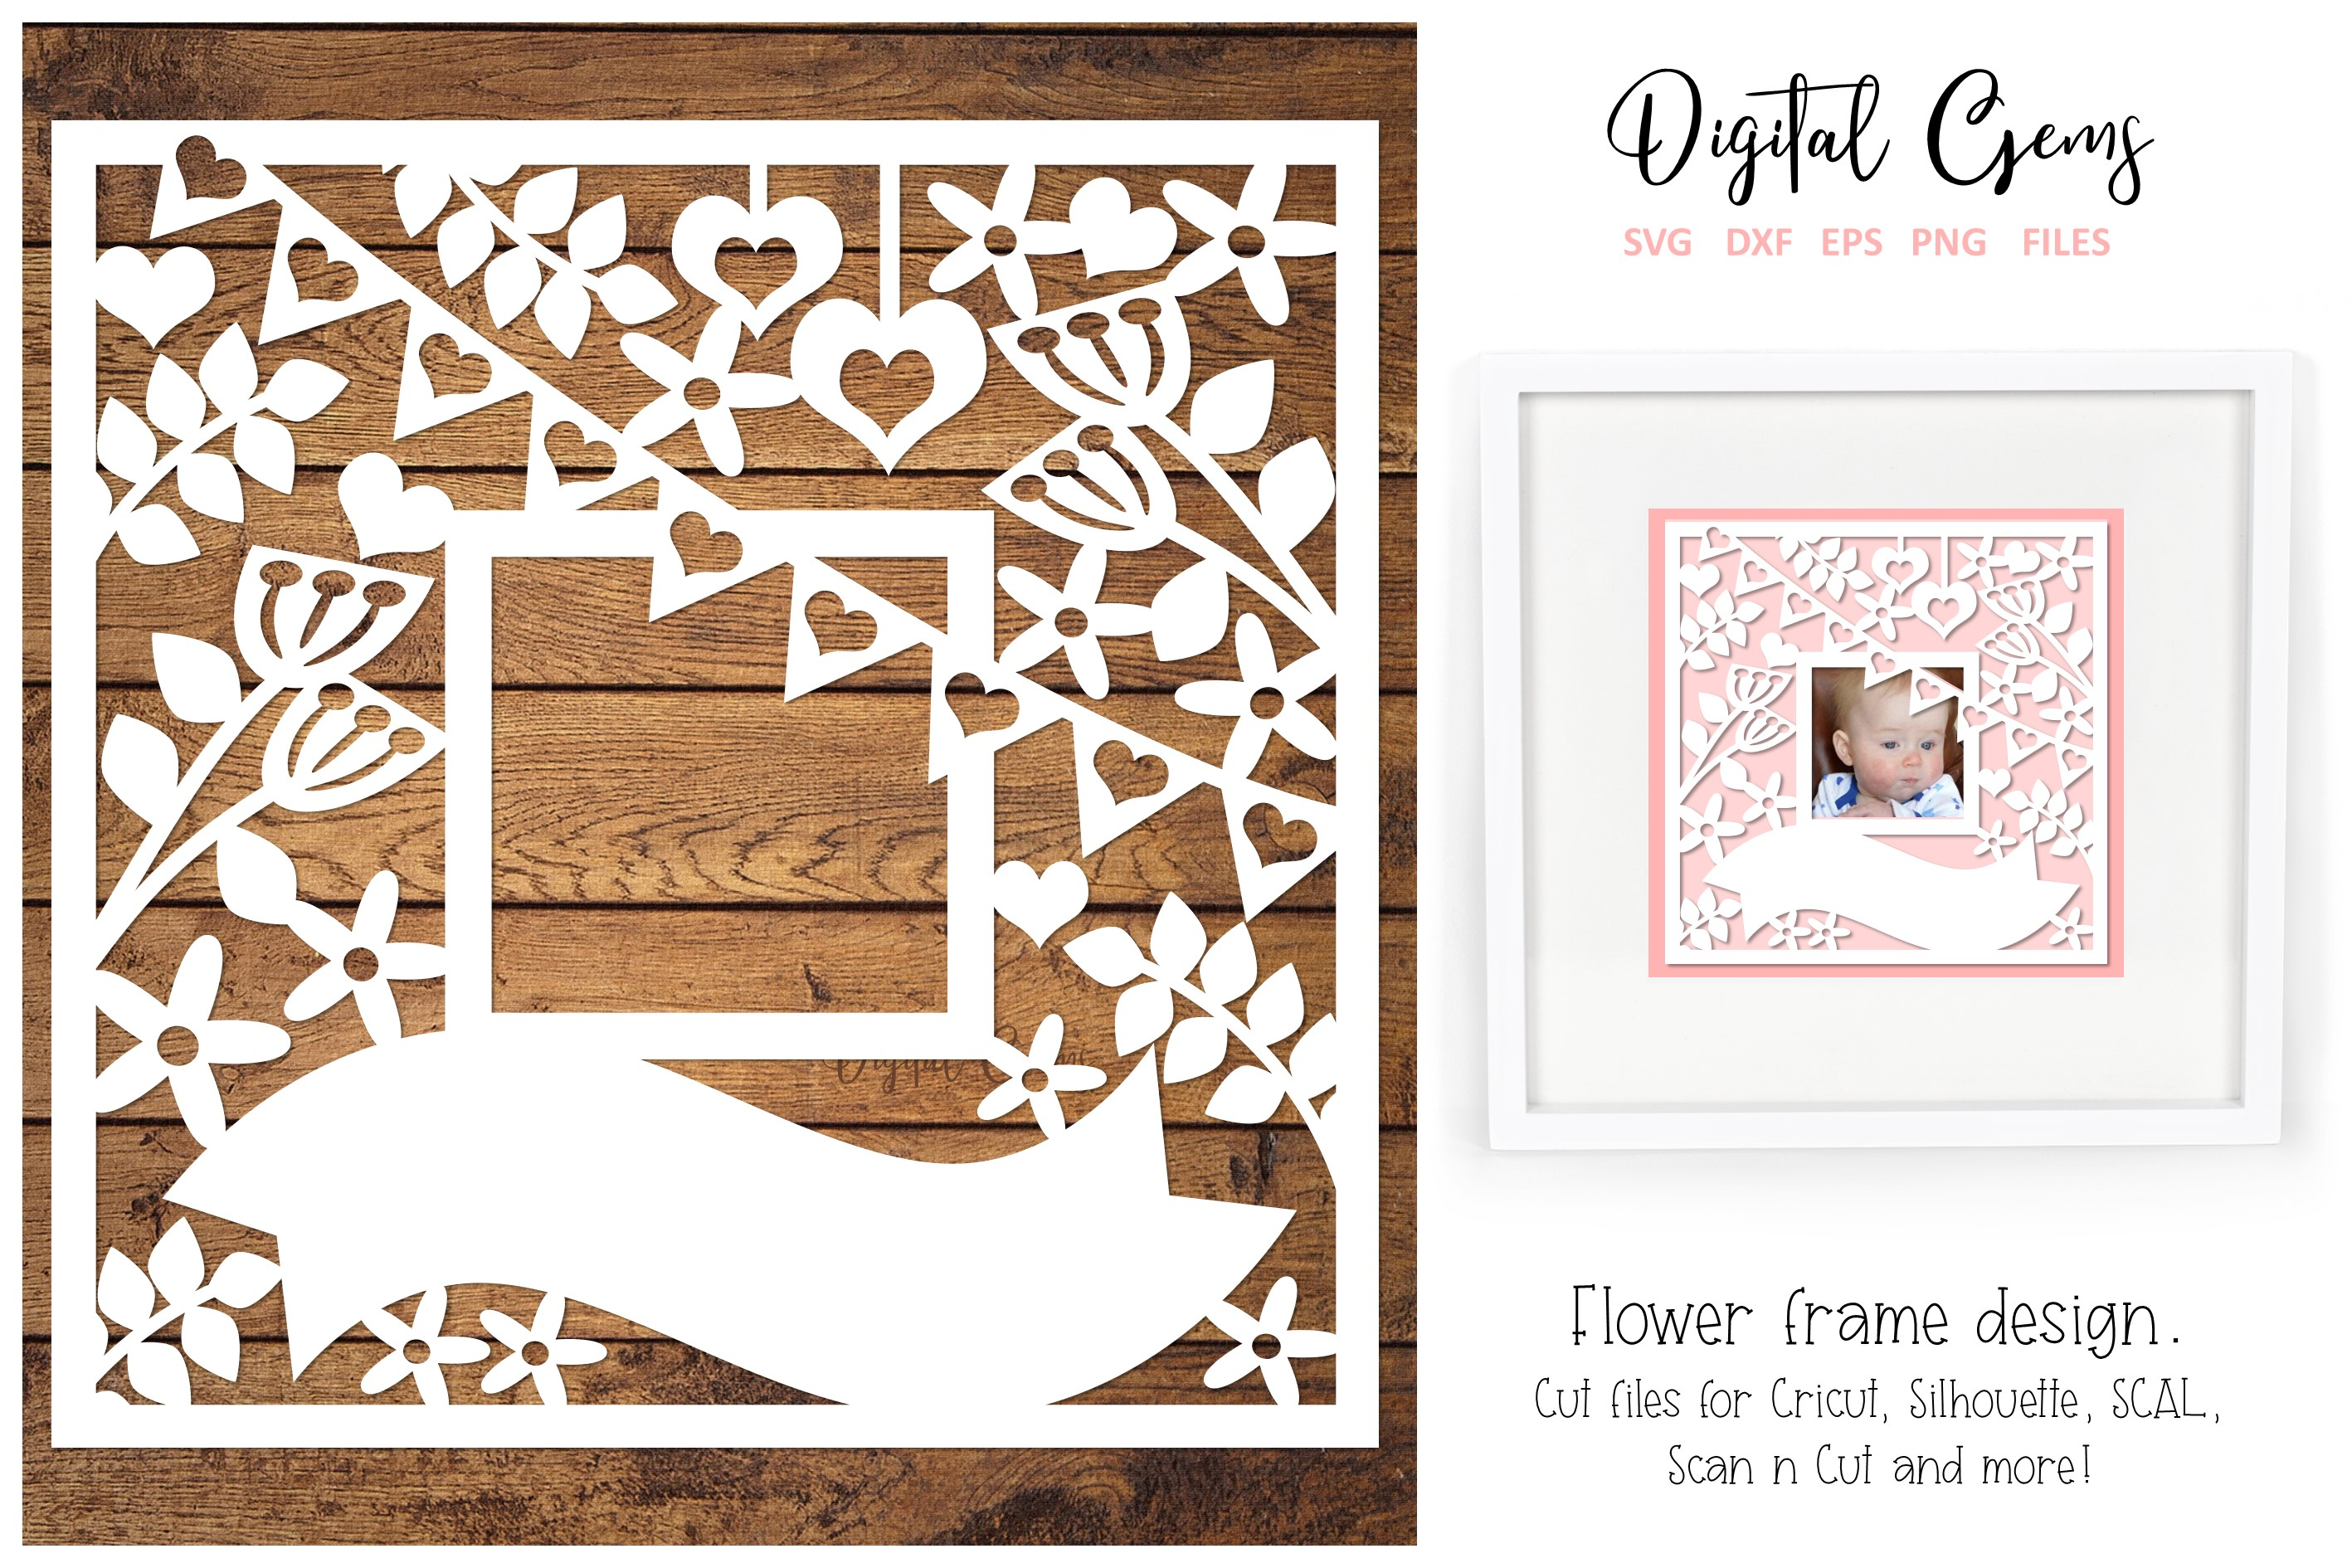 Download Free Flower Frame Design Graphic By Digital Gems Creative Fabrica for Cricut Explore, Silhouette and other cutting machines.